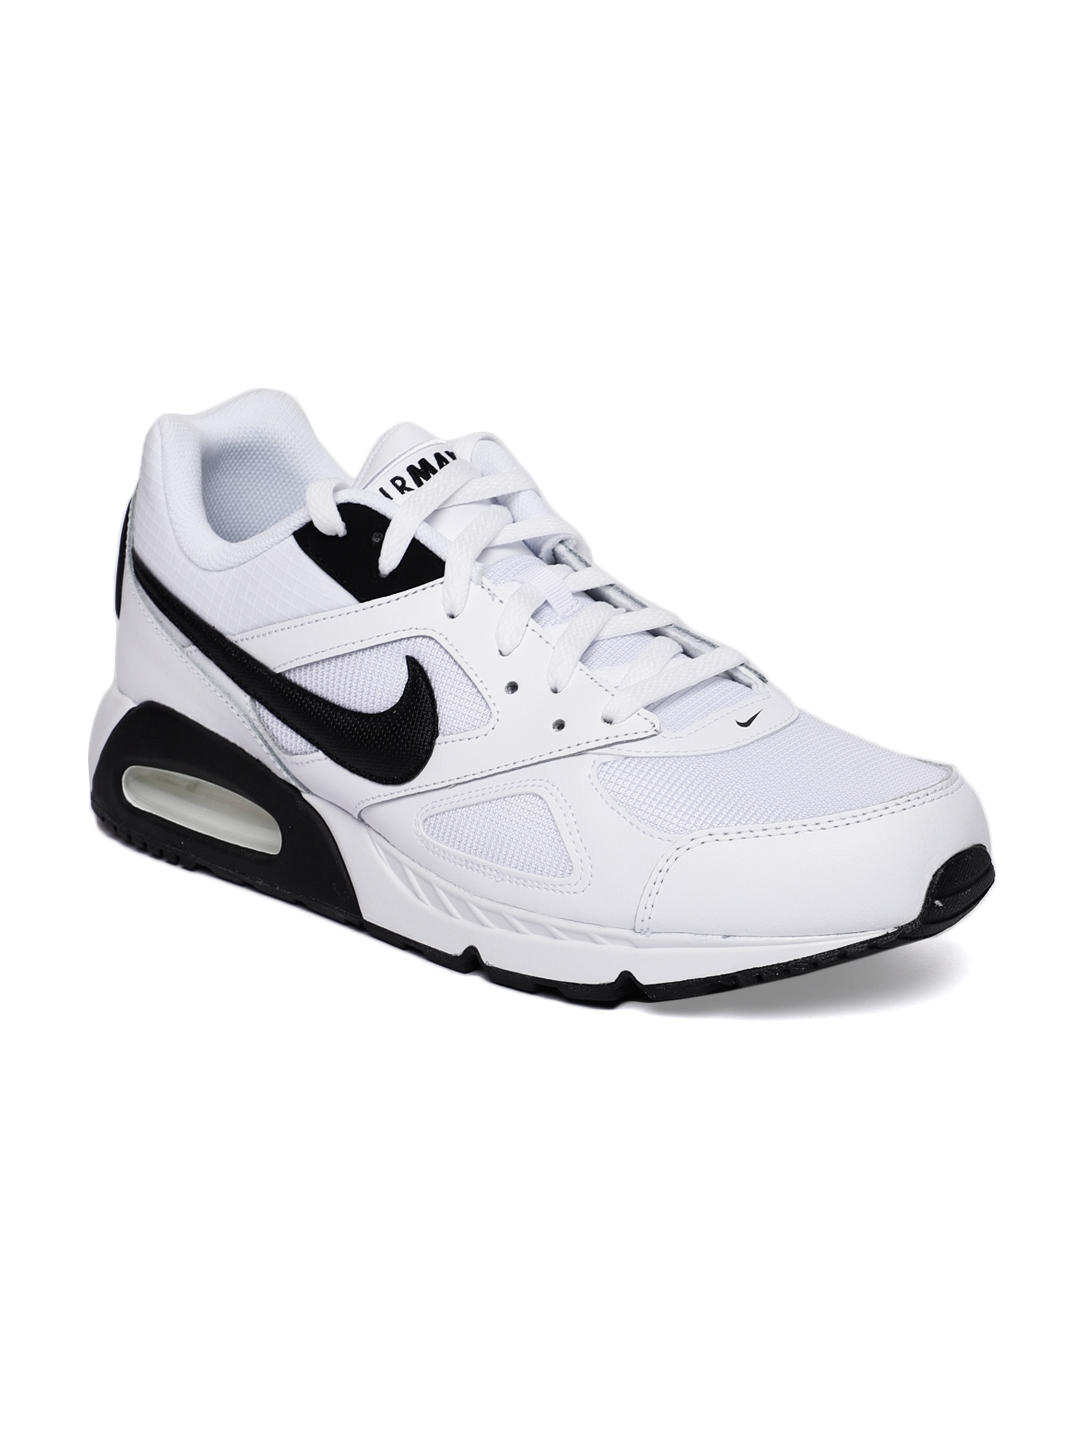 low priced 06883 cc44d coupon code for main image nike air max ivo sneaker men 0eff8 7f7b1